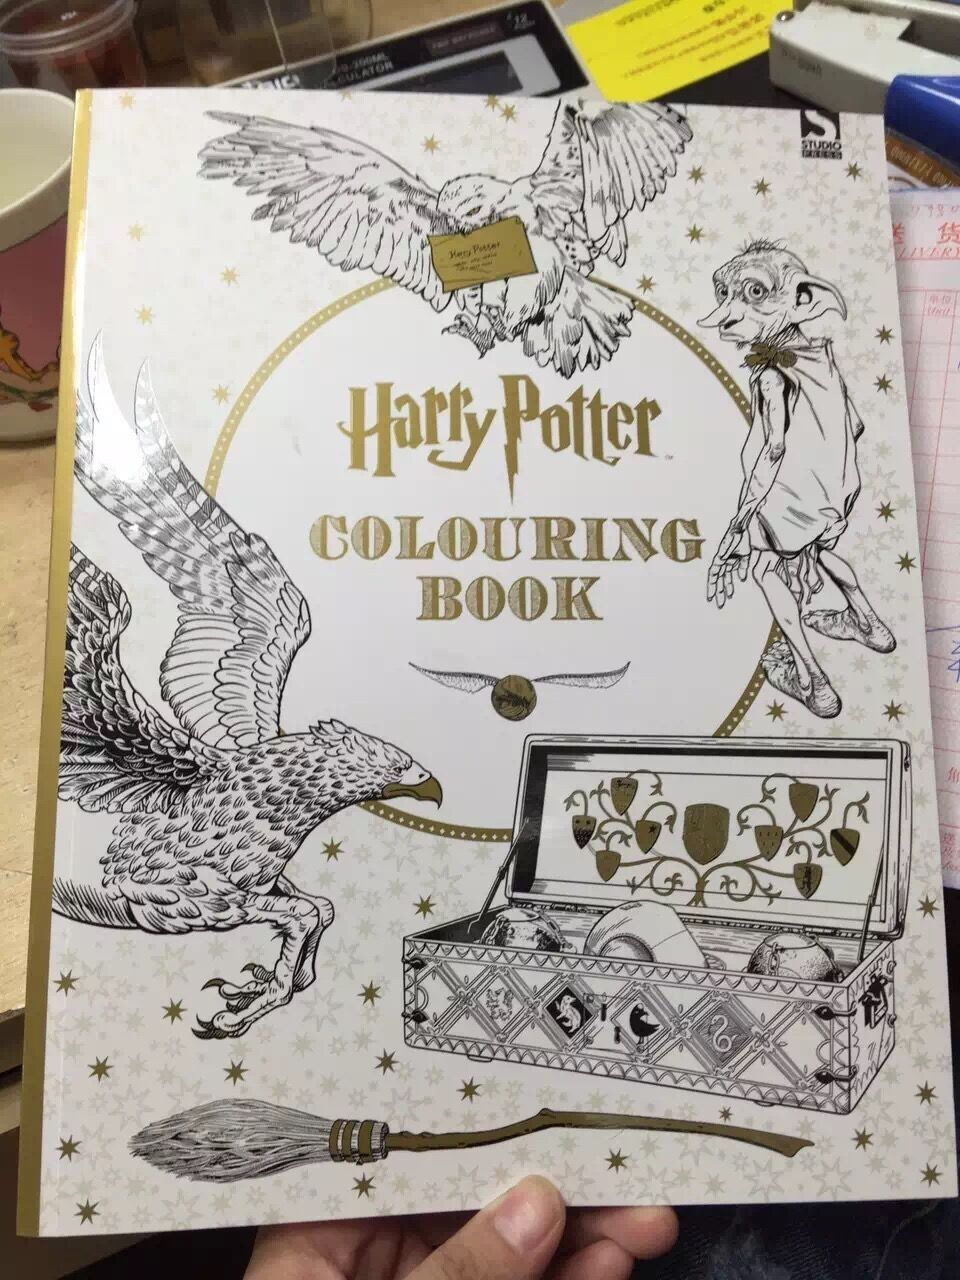 Harry Potter Coloring Book Fresh Us 39 99 Aliexpress Kup Harry